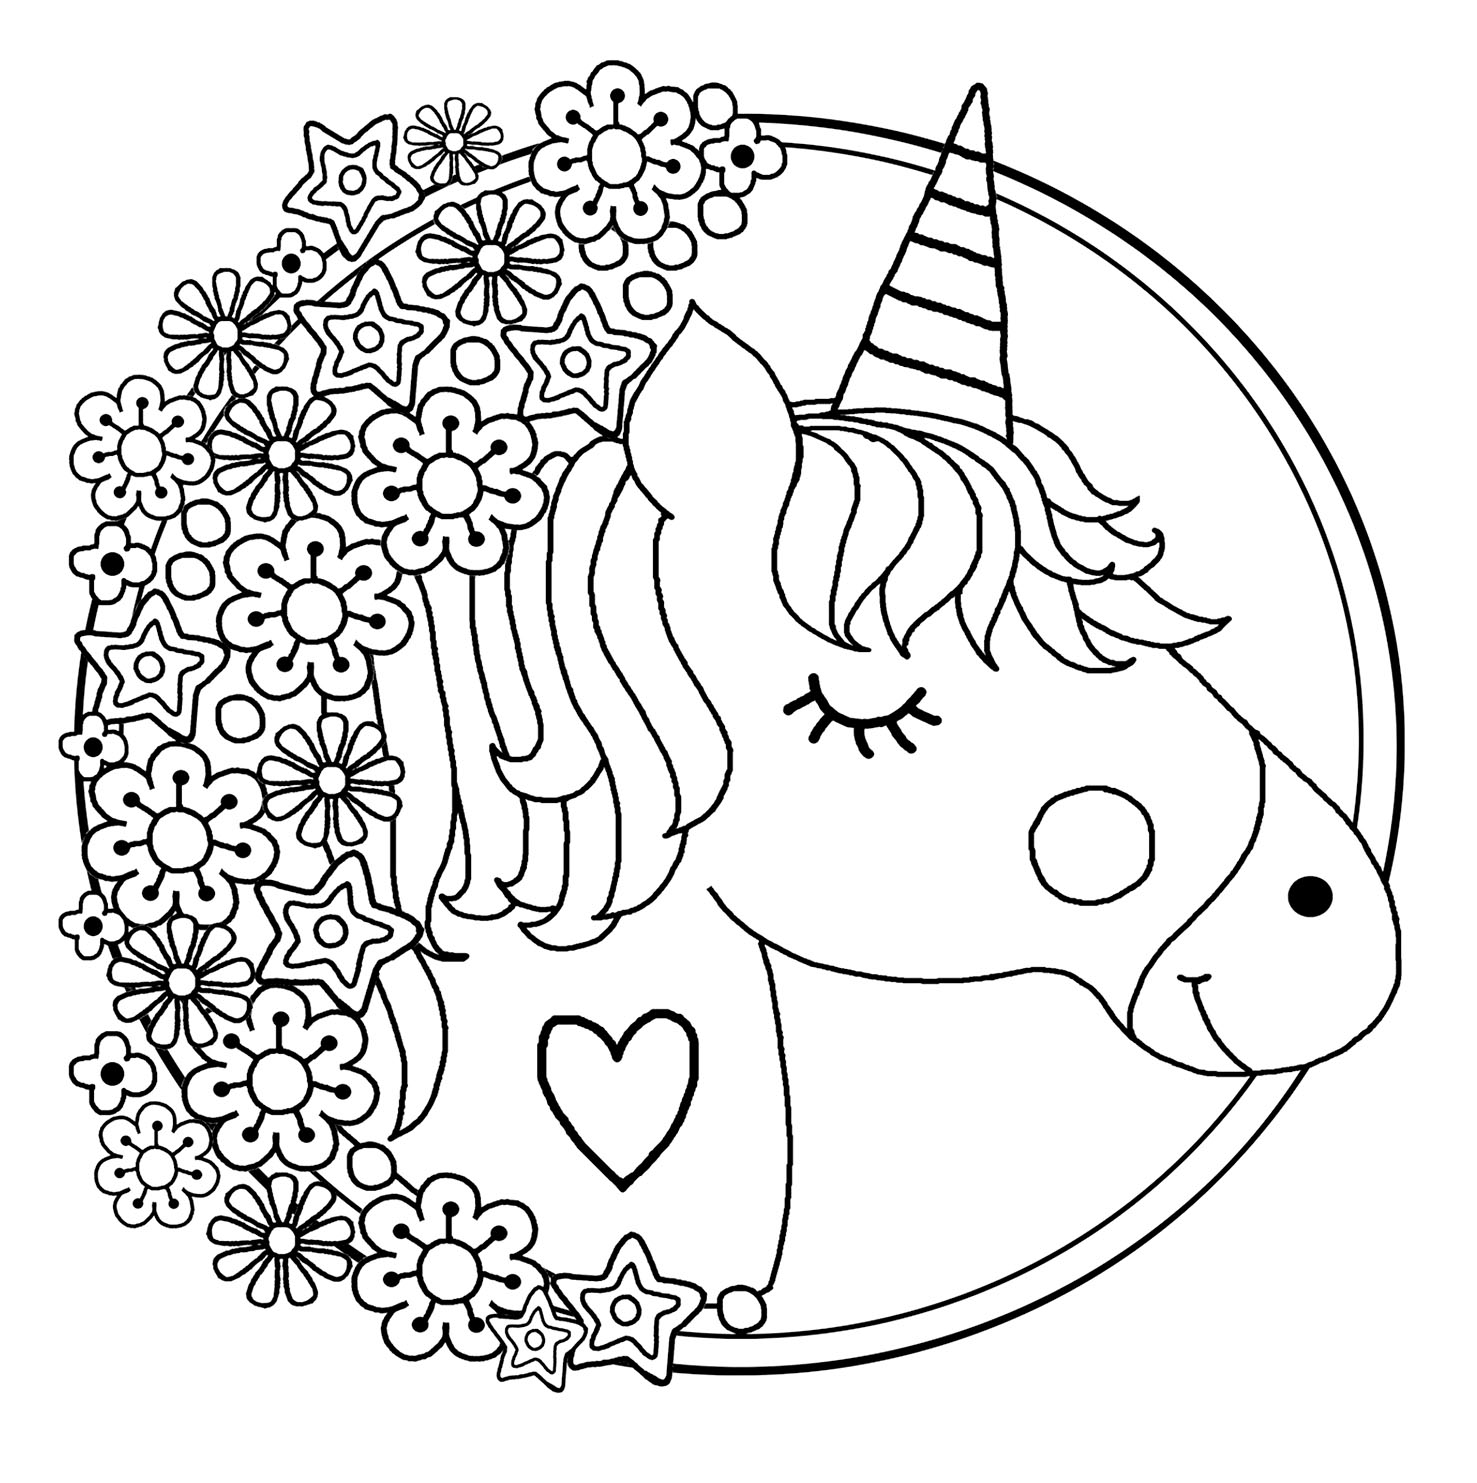 coloring page of unicorn unicorn coloring pages for adults best coloring pages coloring unicorn page of